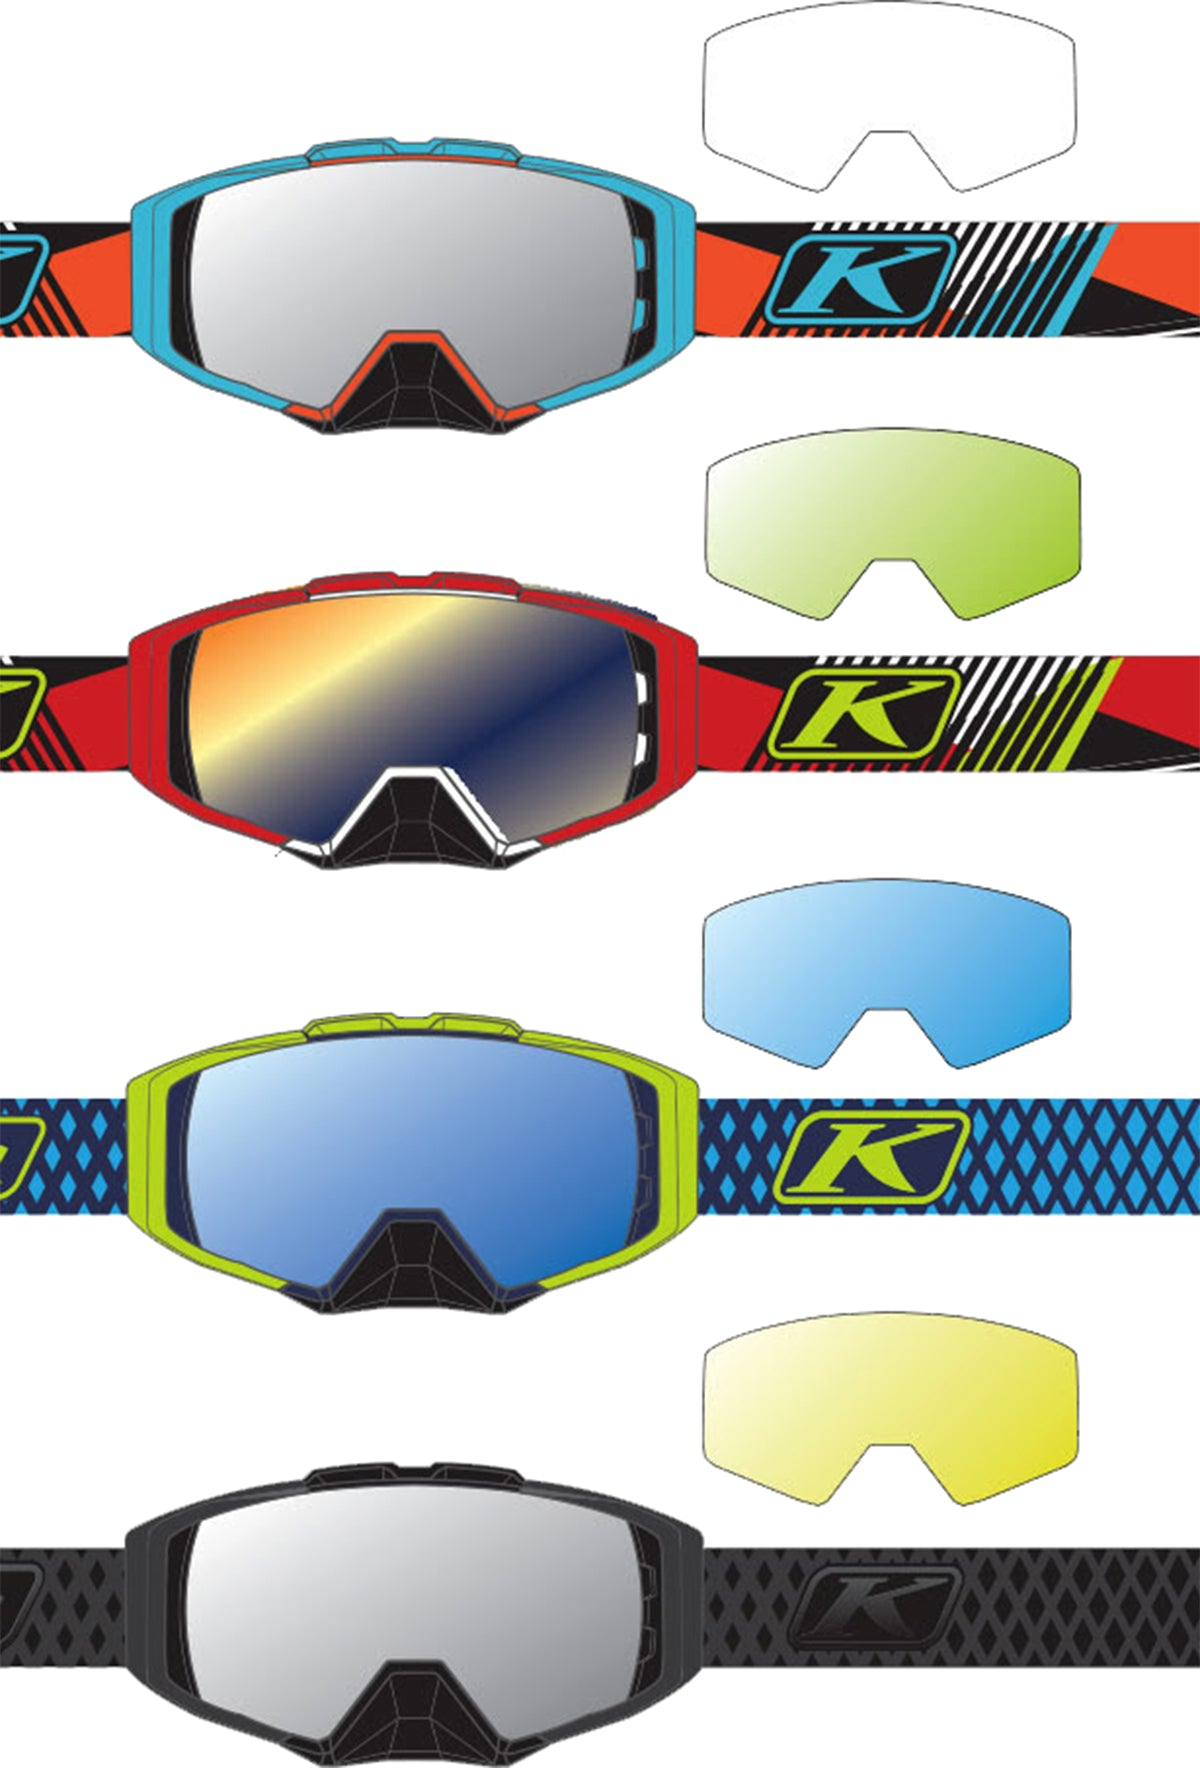 Klim Snow 2017 Winter Sports Goggles